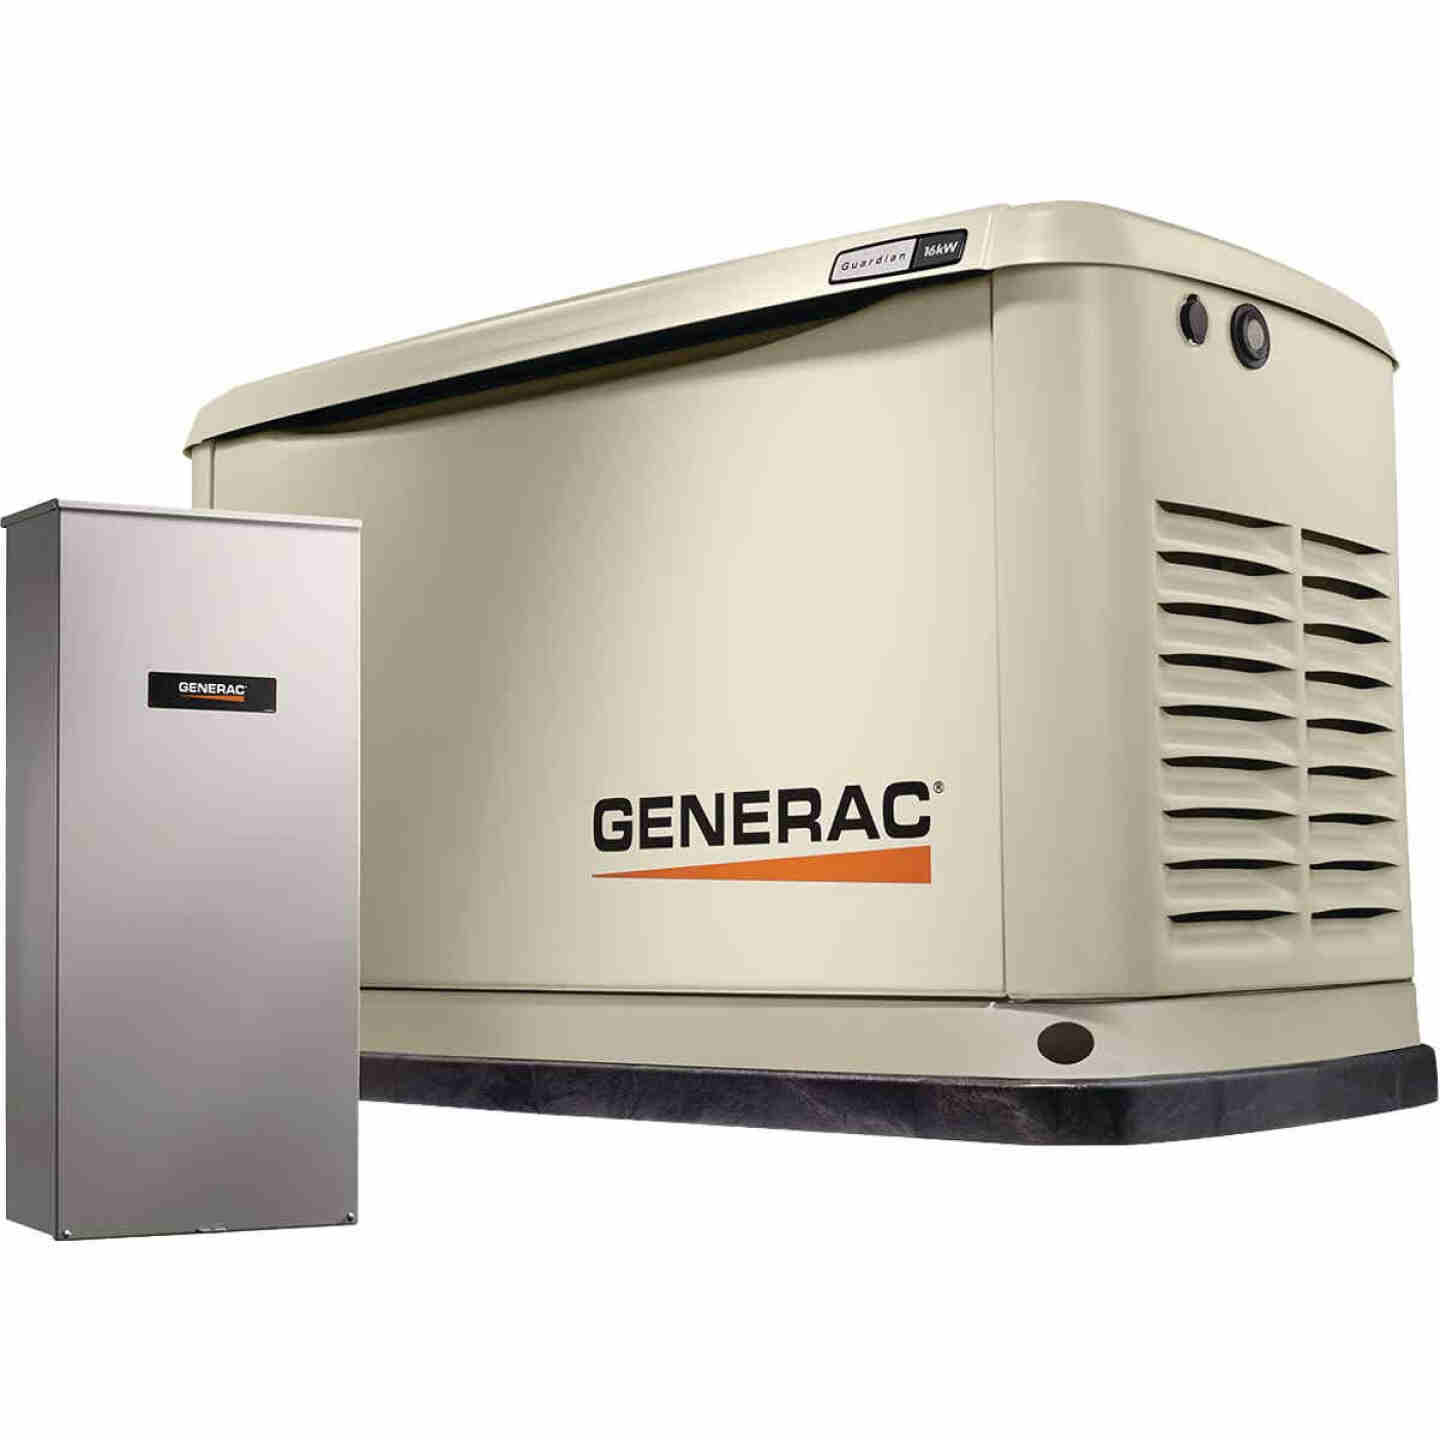 Generac Guardian WiFi 16,000W Natural Gas/LP Home Standby Generator Home Back Up Generator with Smart Switch Image 1